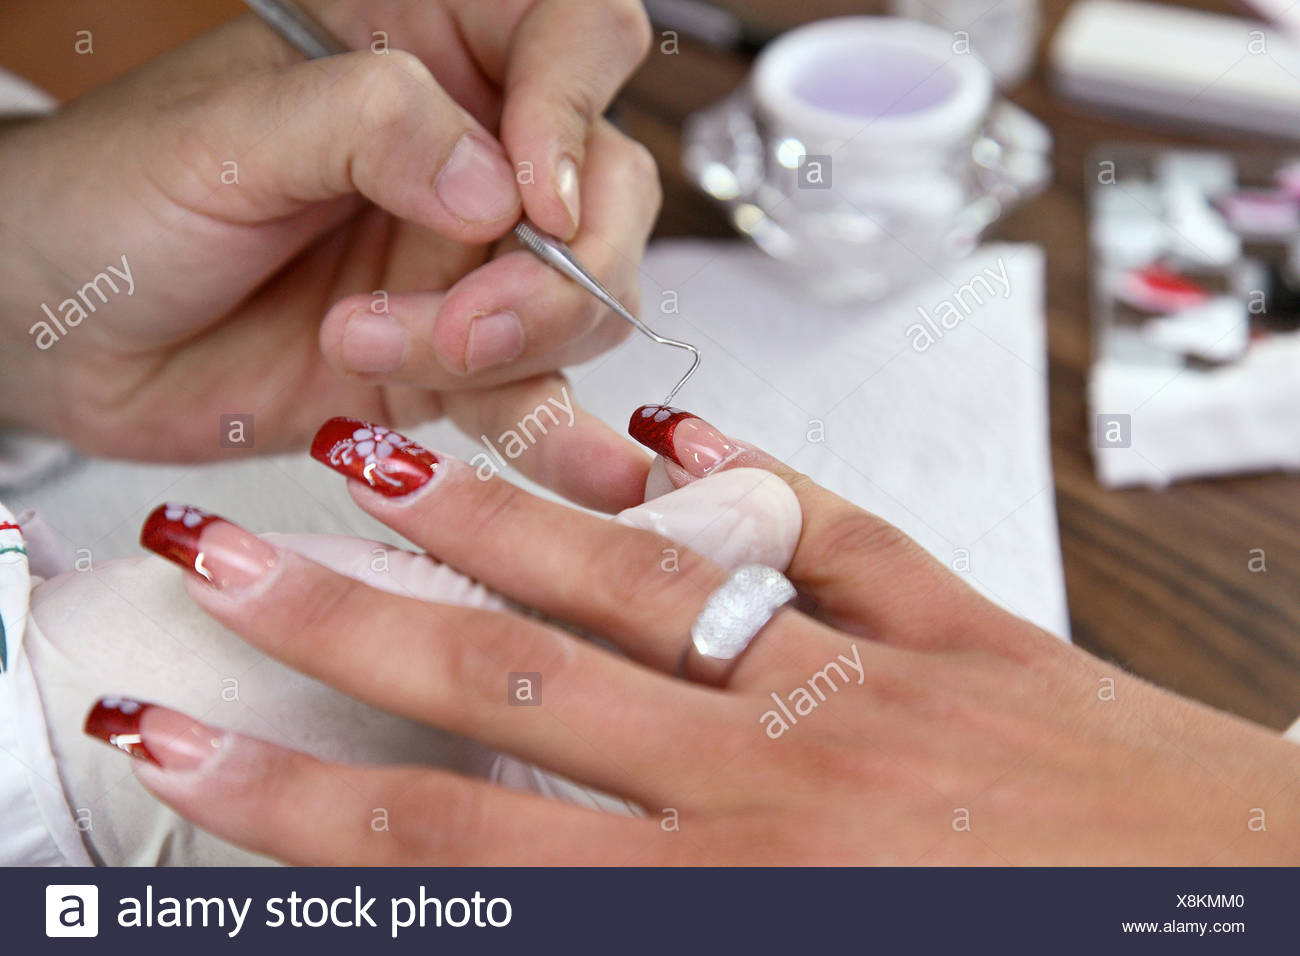 Berlin Germany A Nail Designer Decorated Nails With Glitter Stock